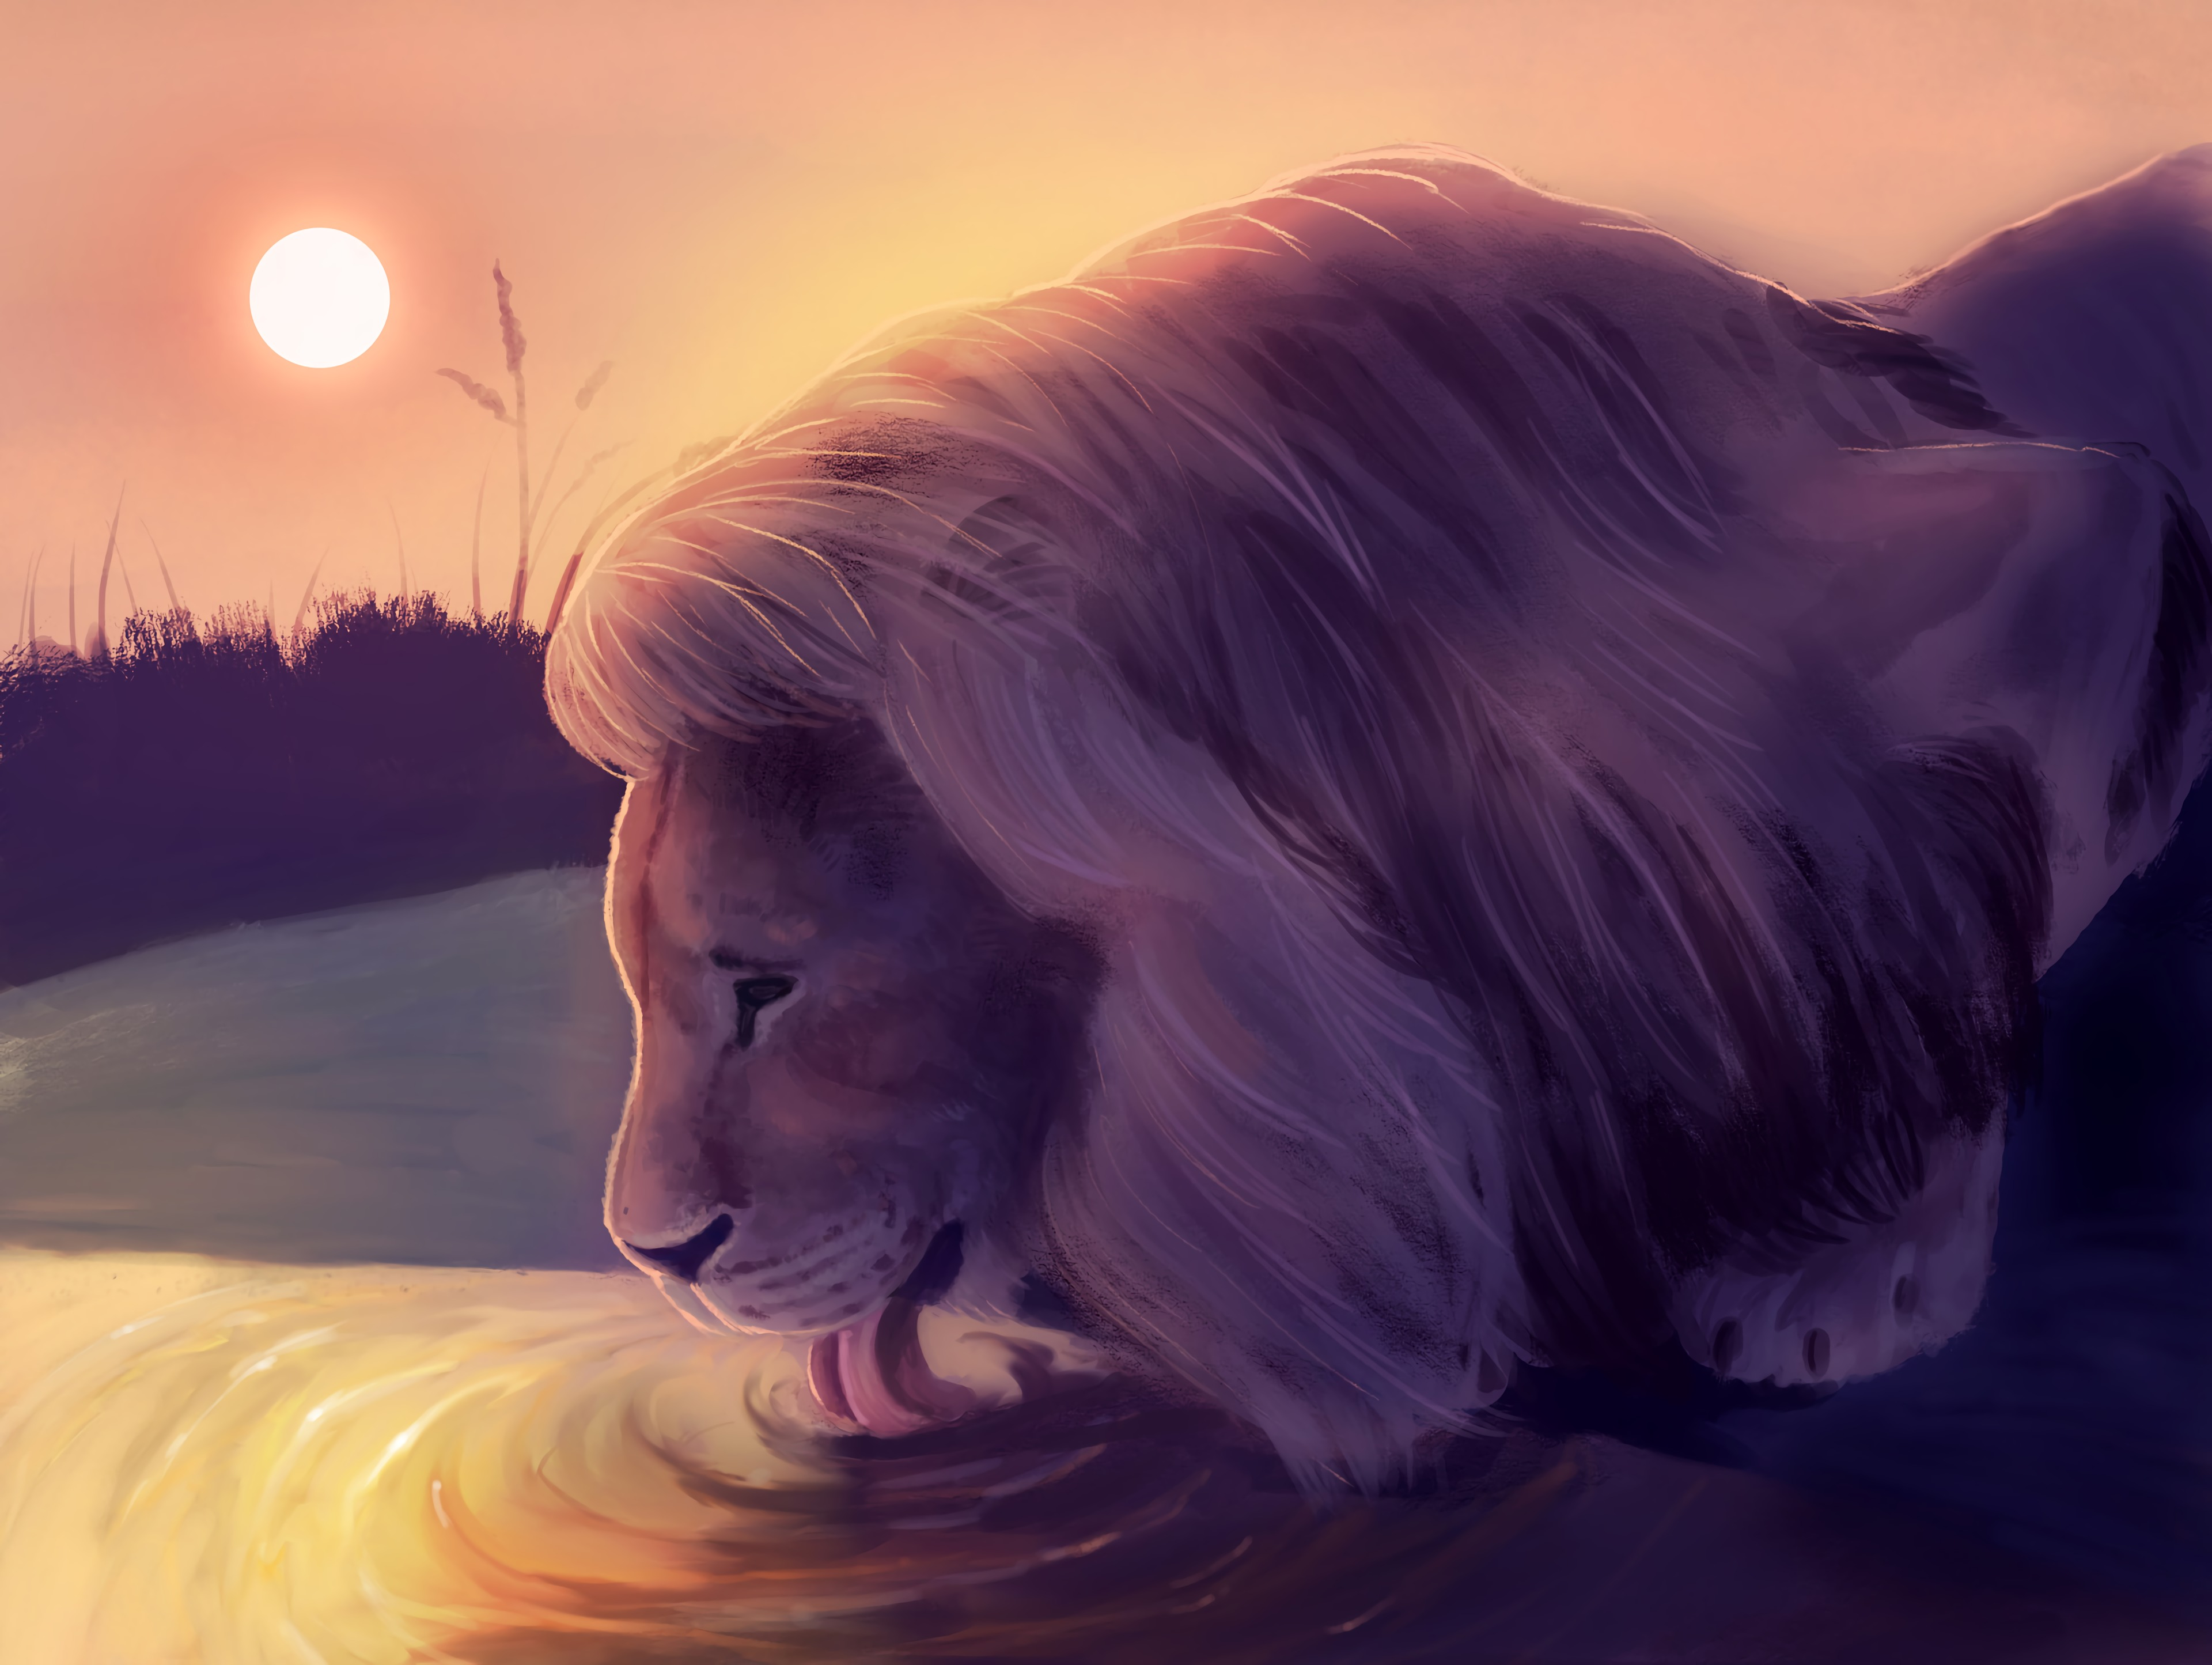 65591 download wallpaper Lion, Water, Protruding Tongue, Tongue Stuck Out, Art, Wildlife screensavers and pictures for free